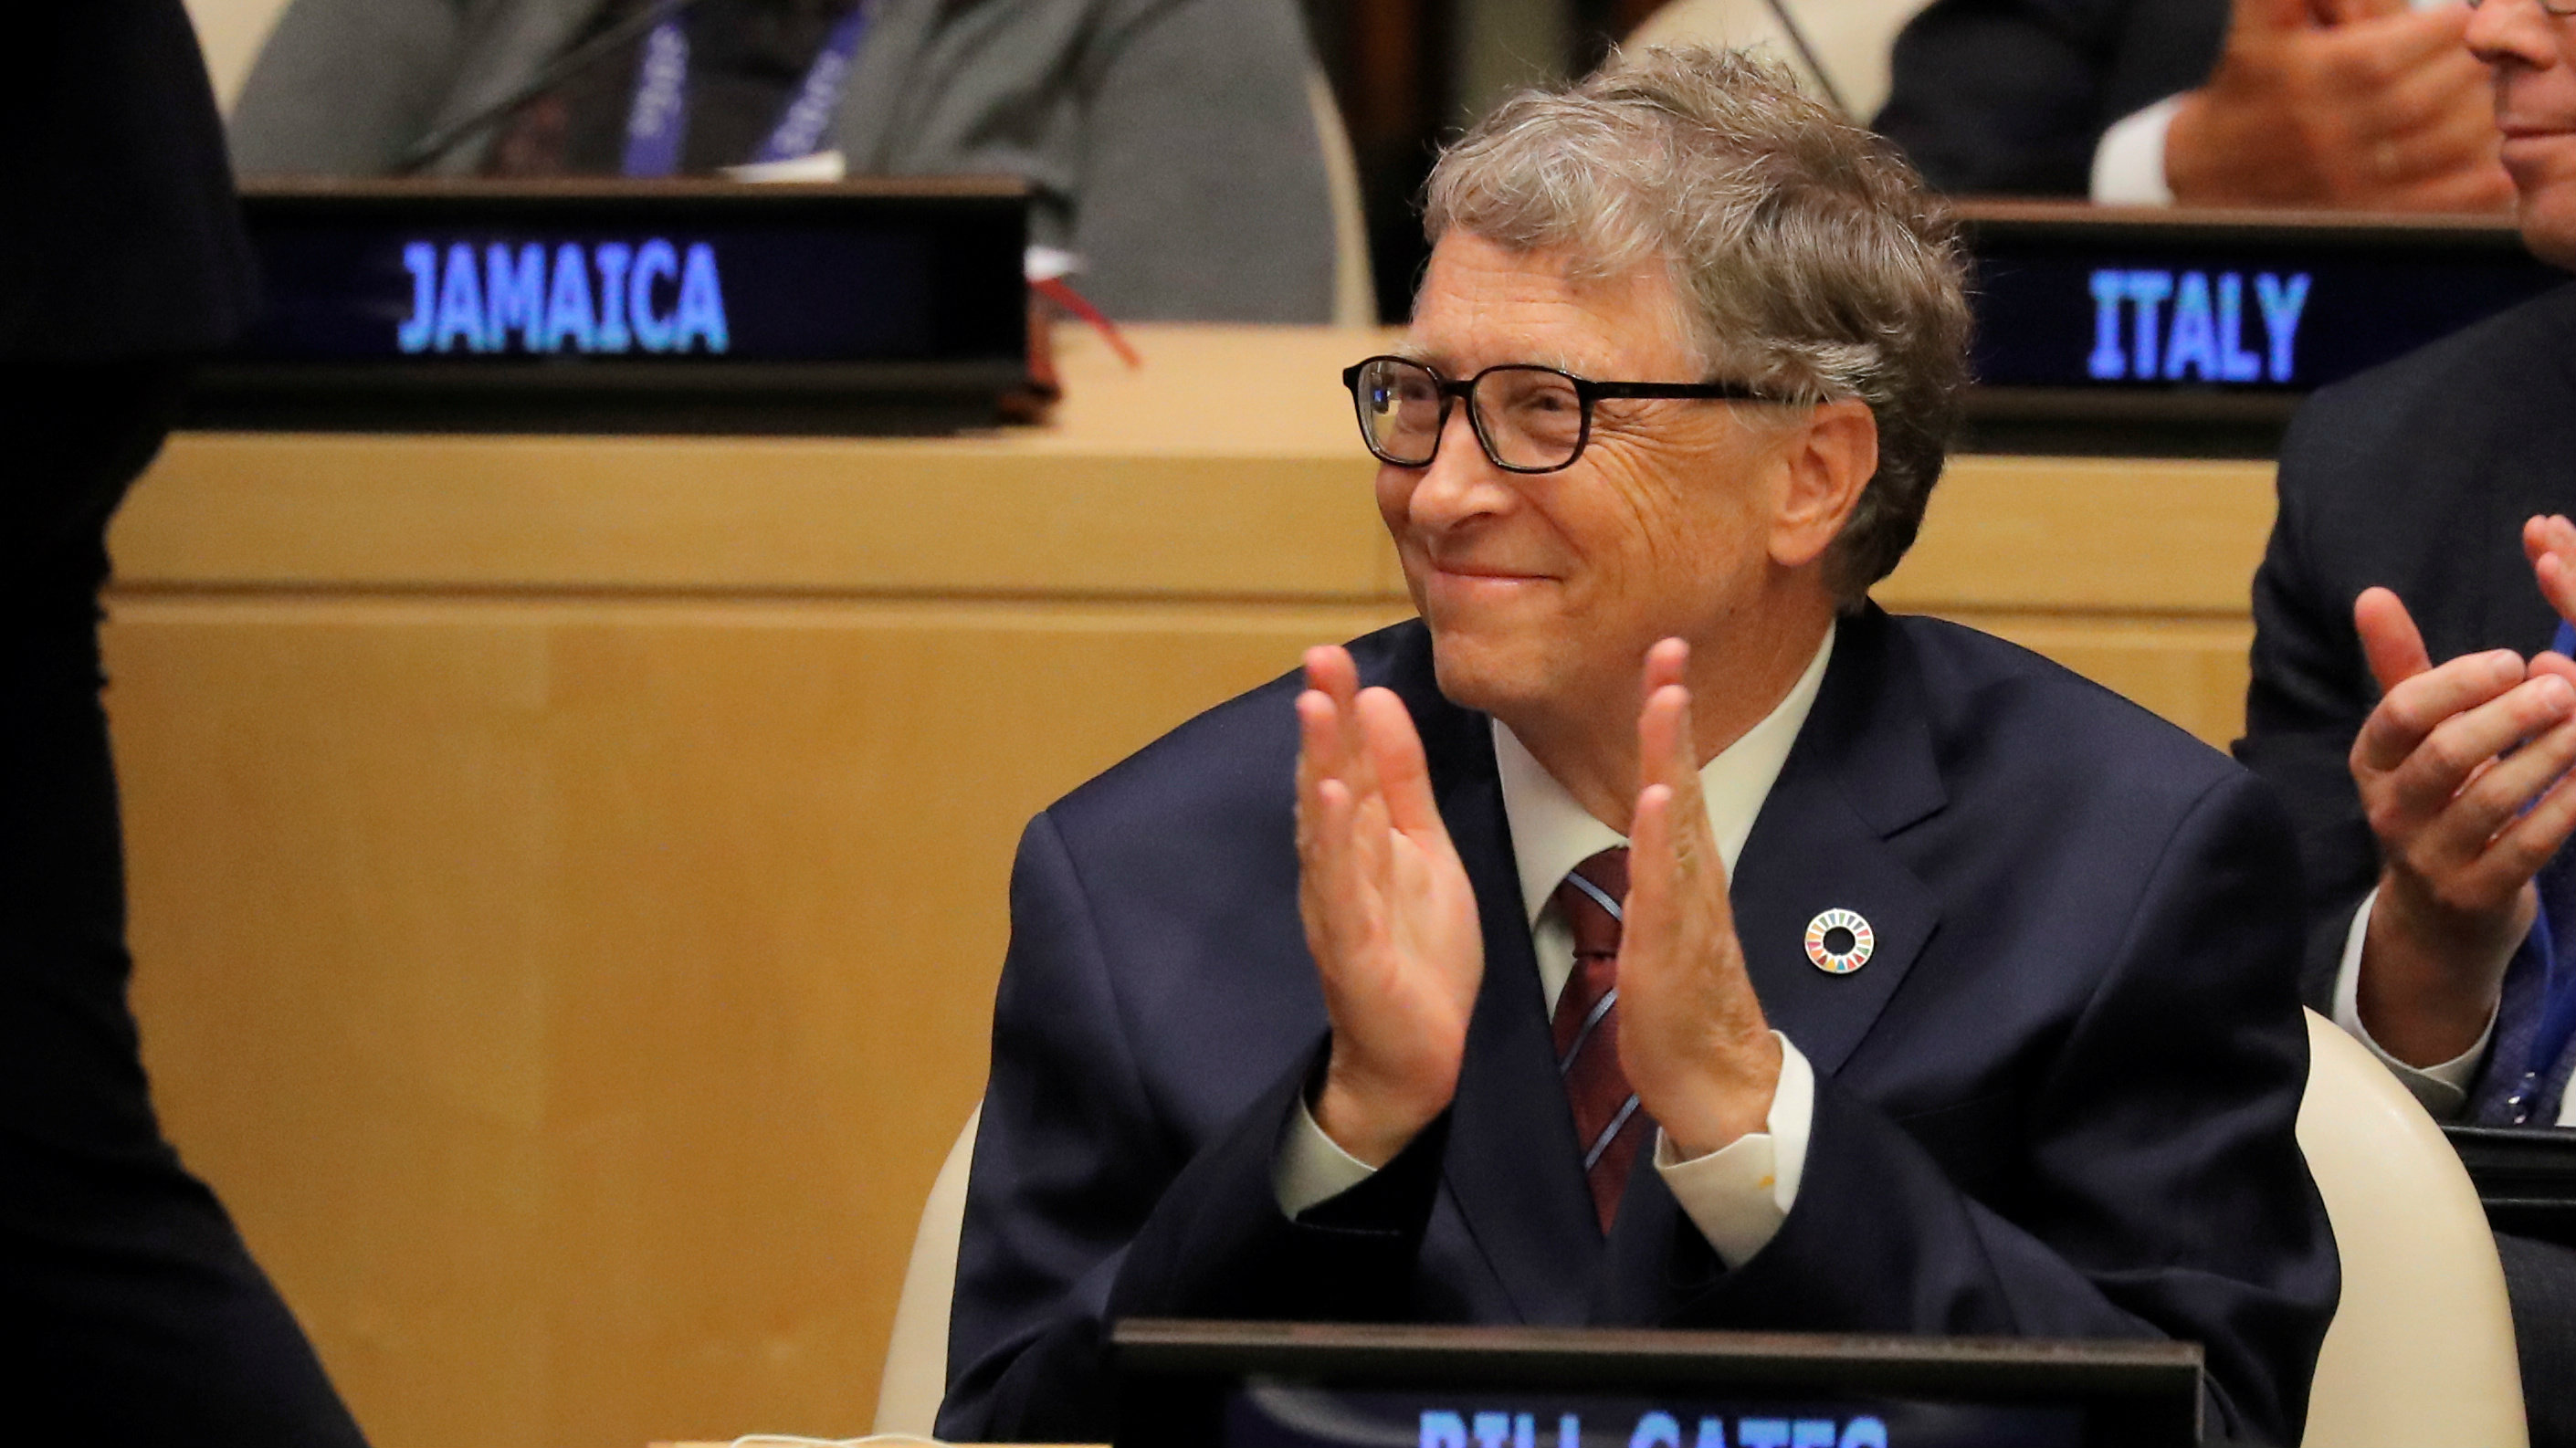 Microsoft Founder Bill Gates attends U.N. Secretary General Antonio Guterres' High-Level meeting on Financing during 73rd United Nations General Assembly in New York